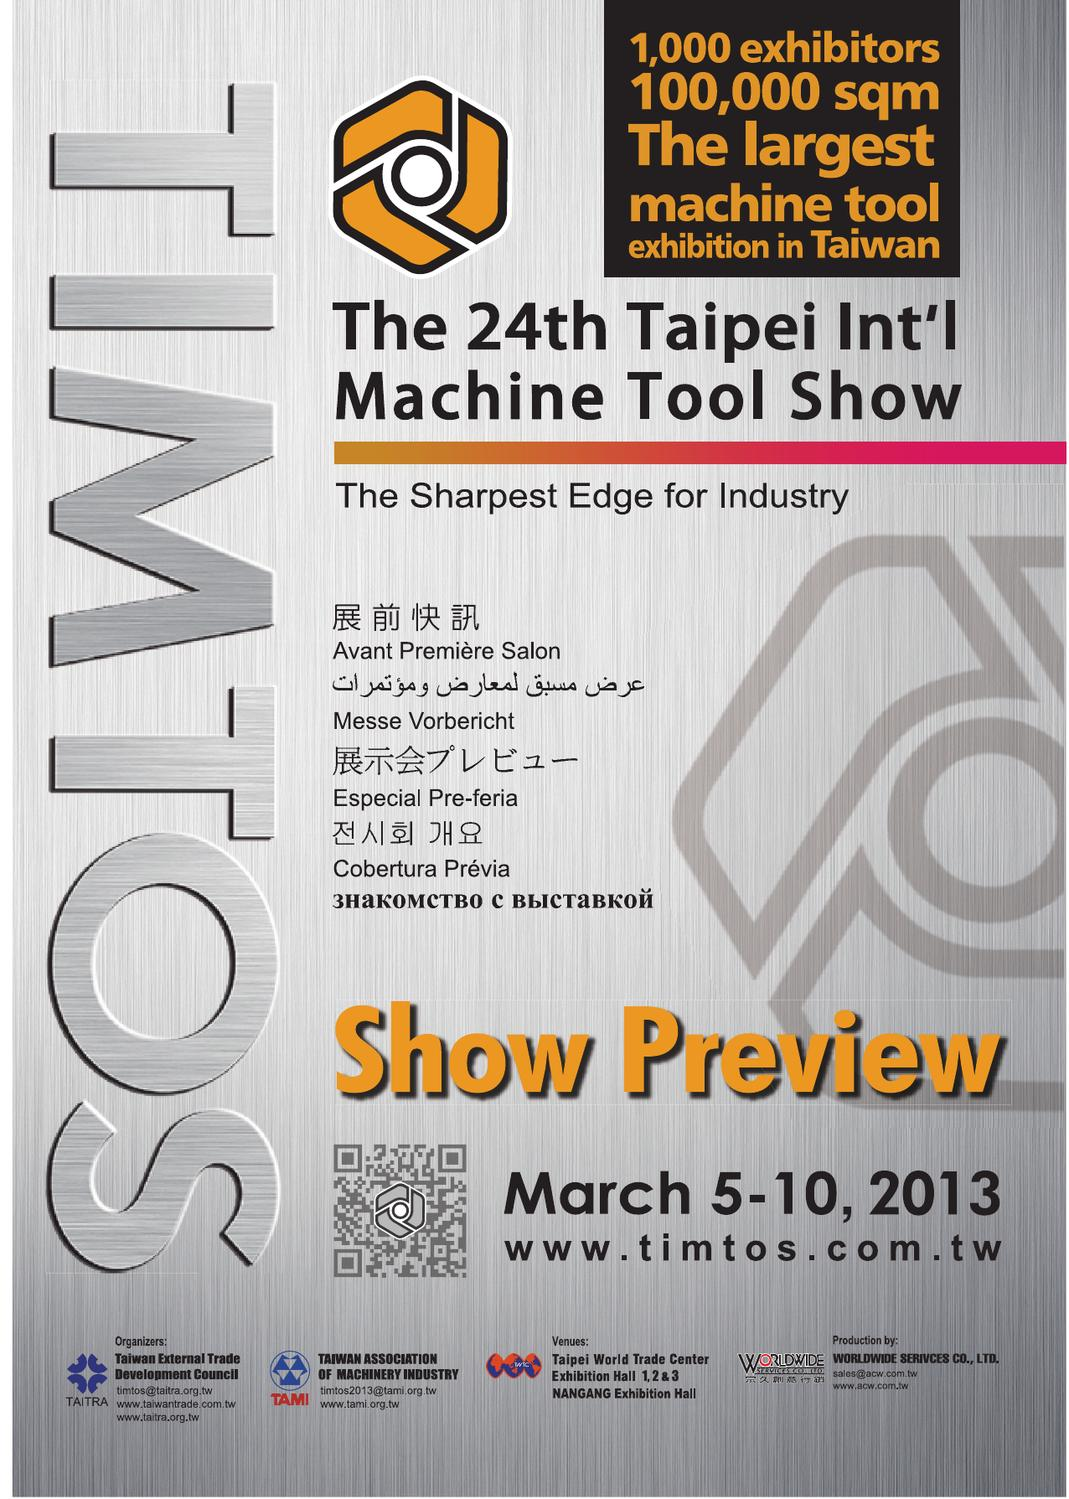 Show Preview of Taipei Int'l Machine Tool Show (TIMTOS 2013